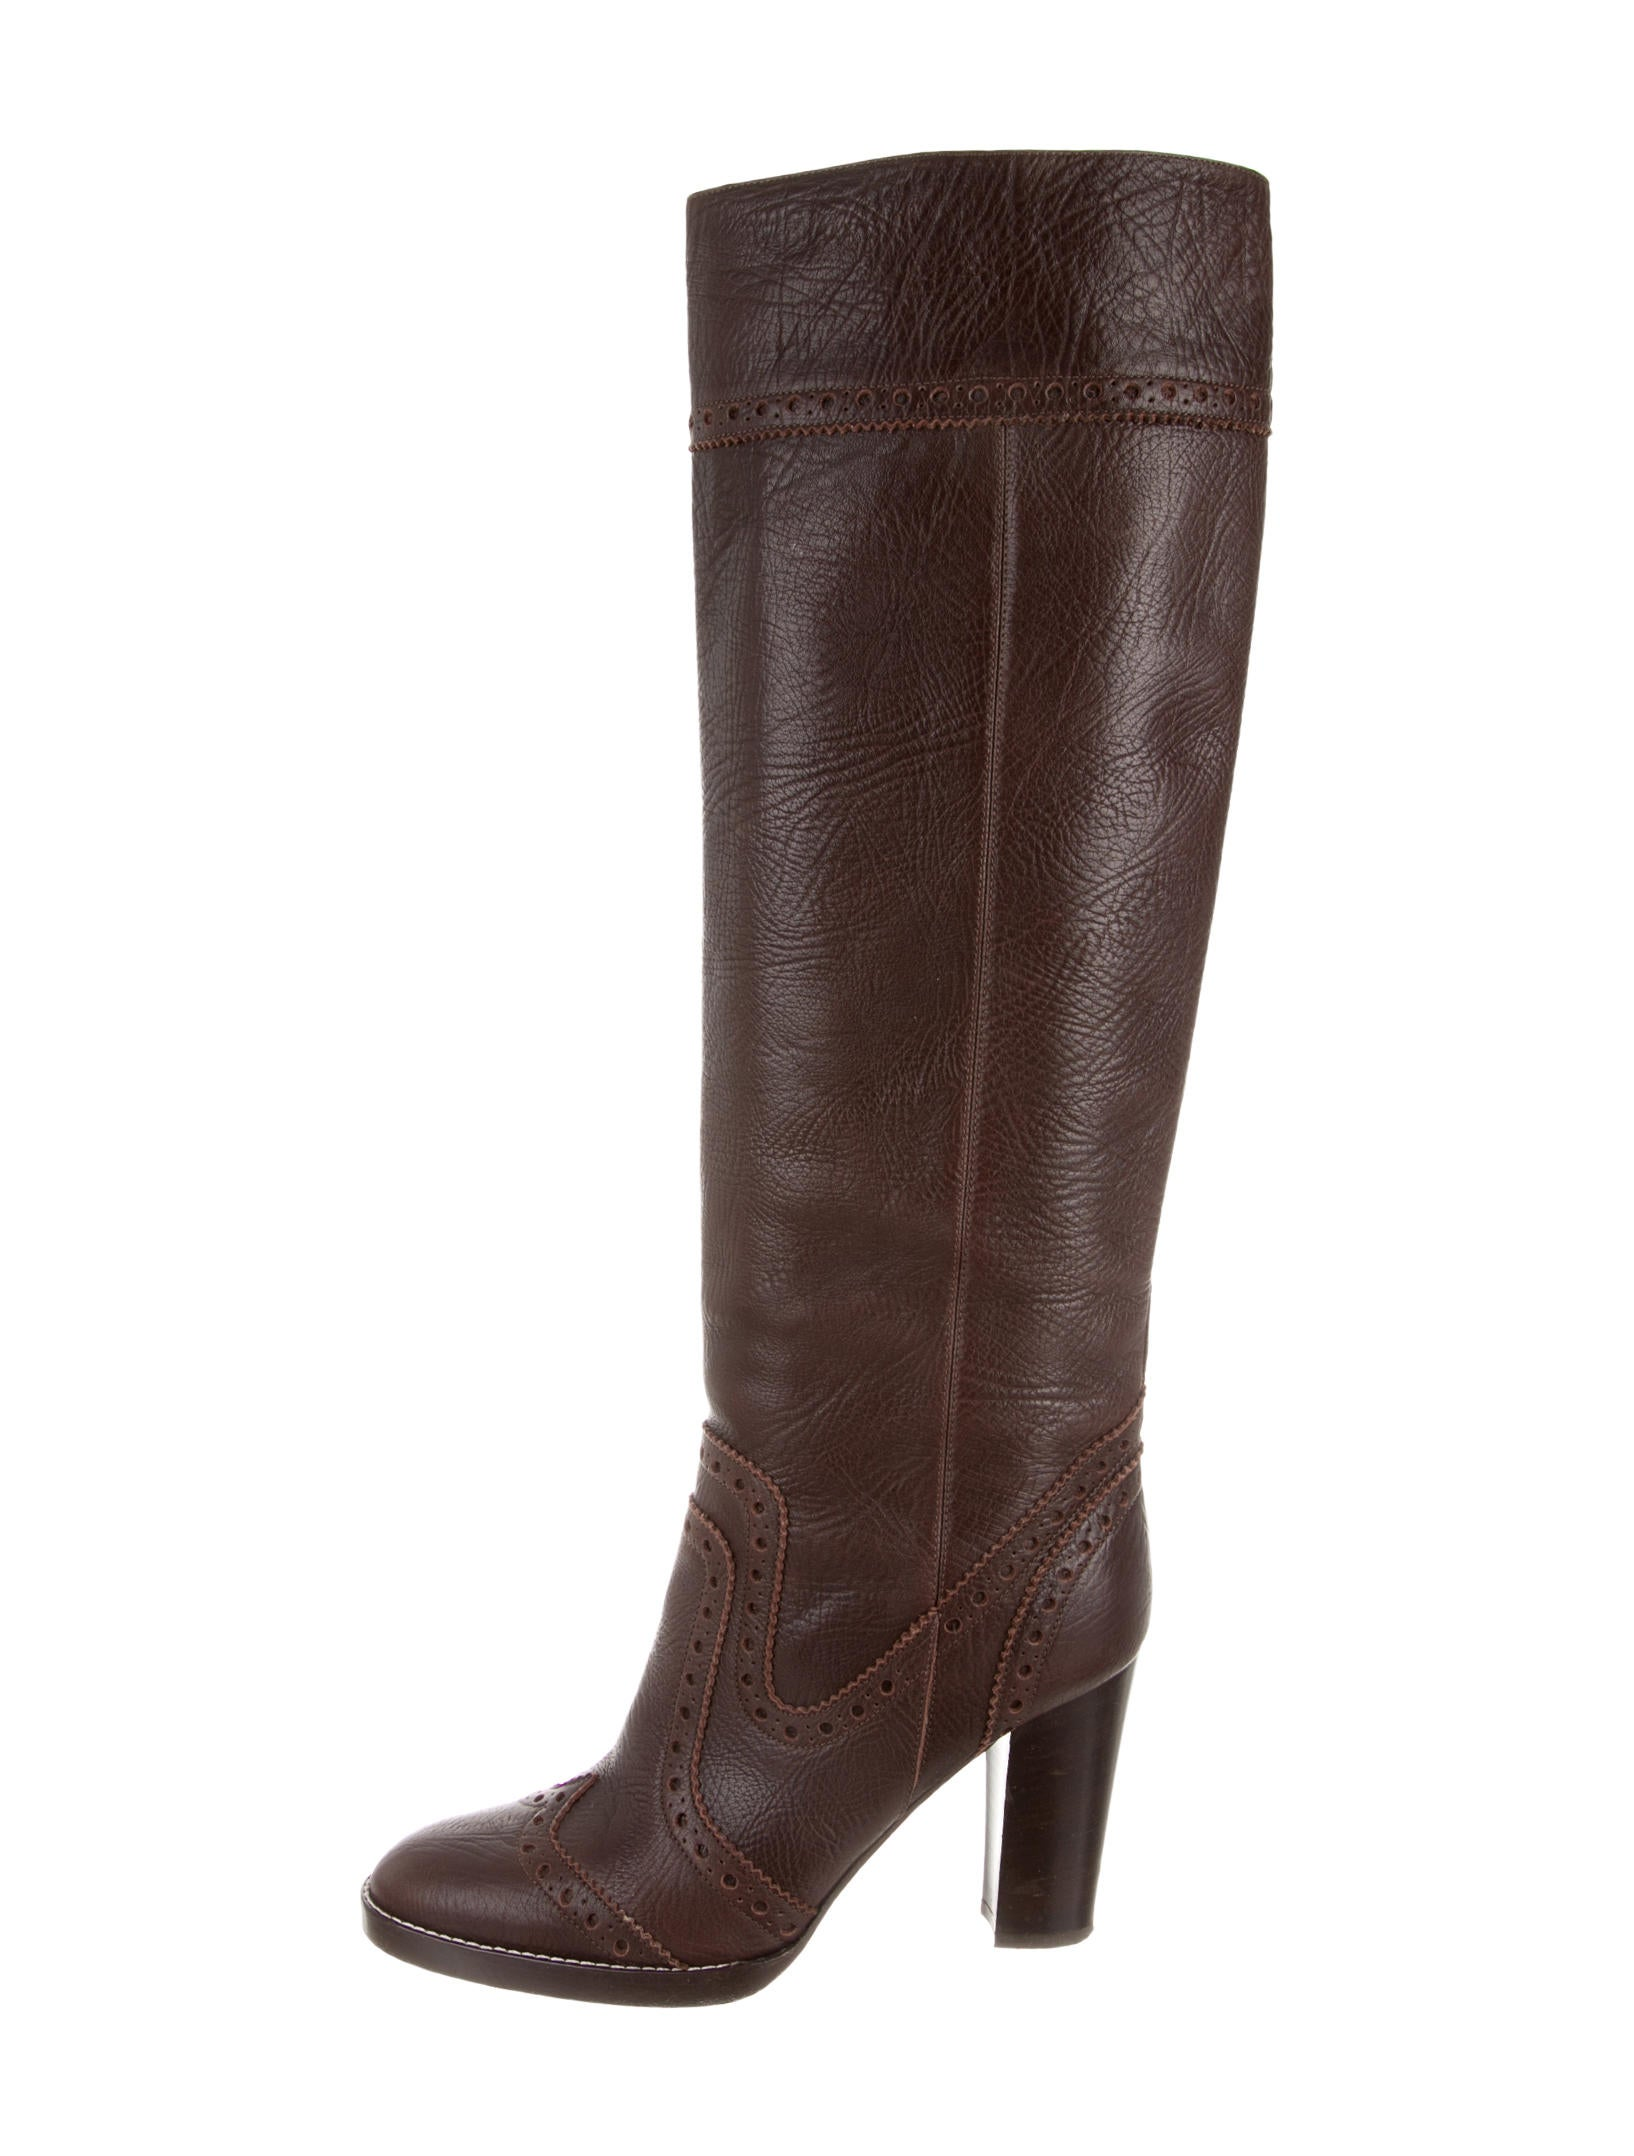 michael kors boots shoes mic31659 the realreal